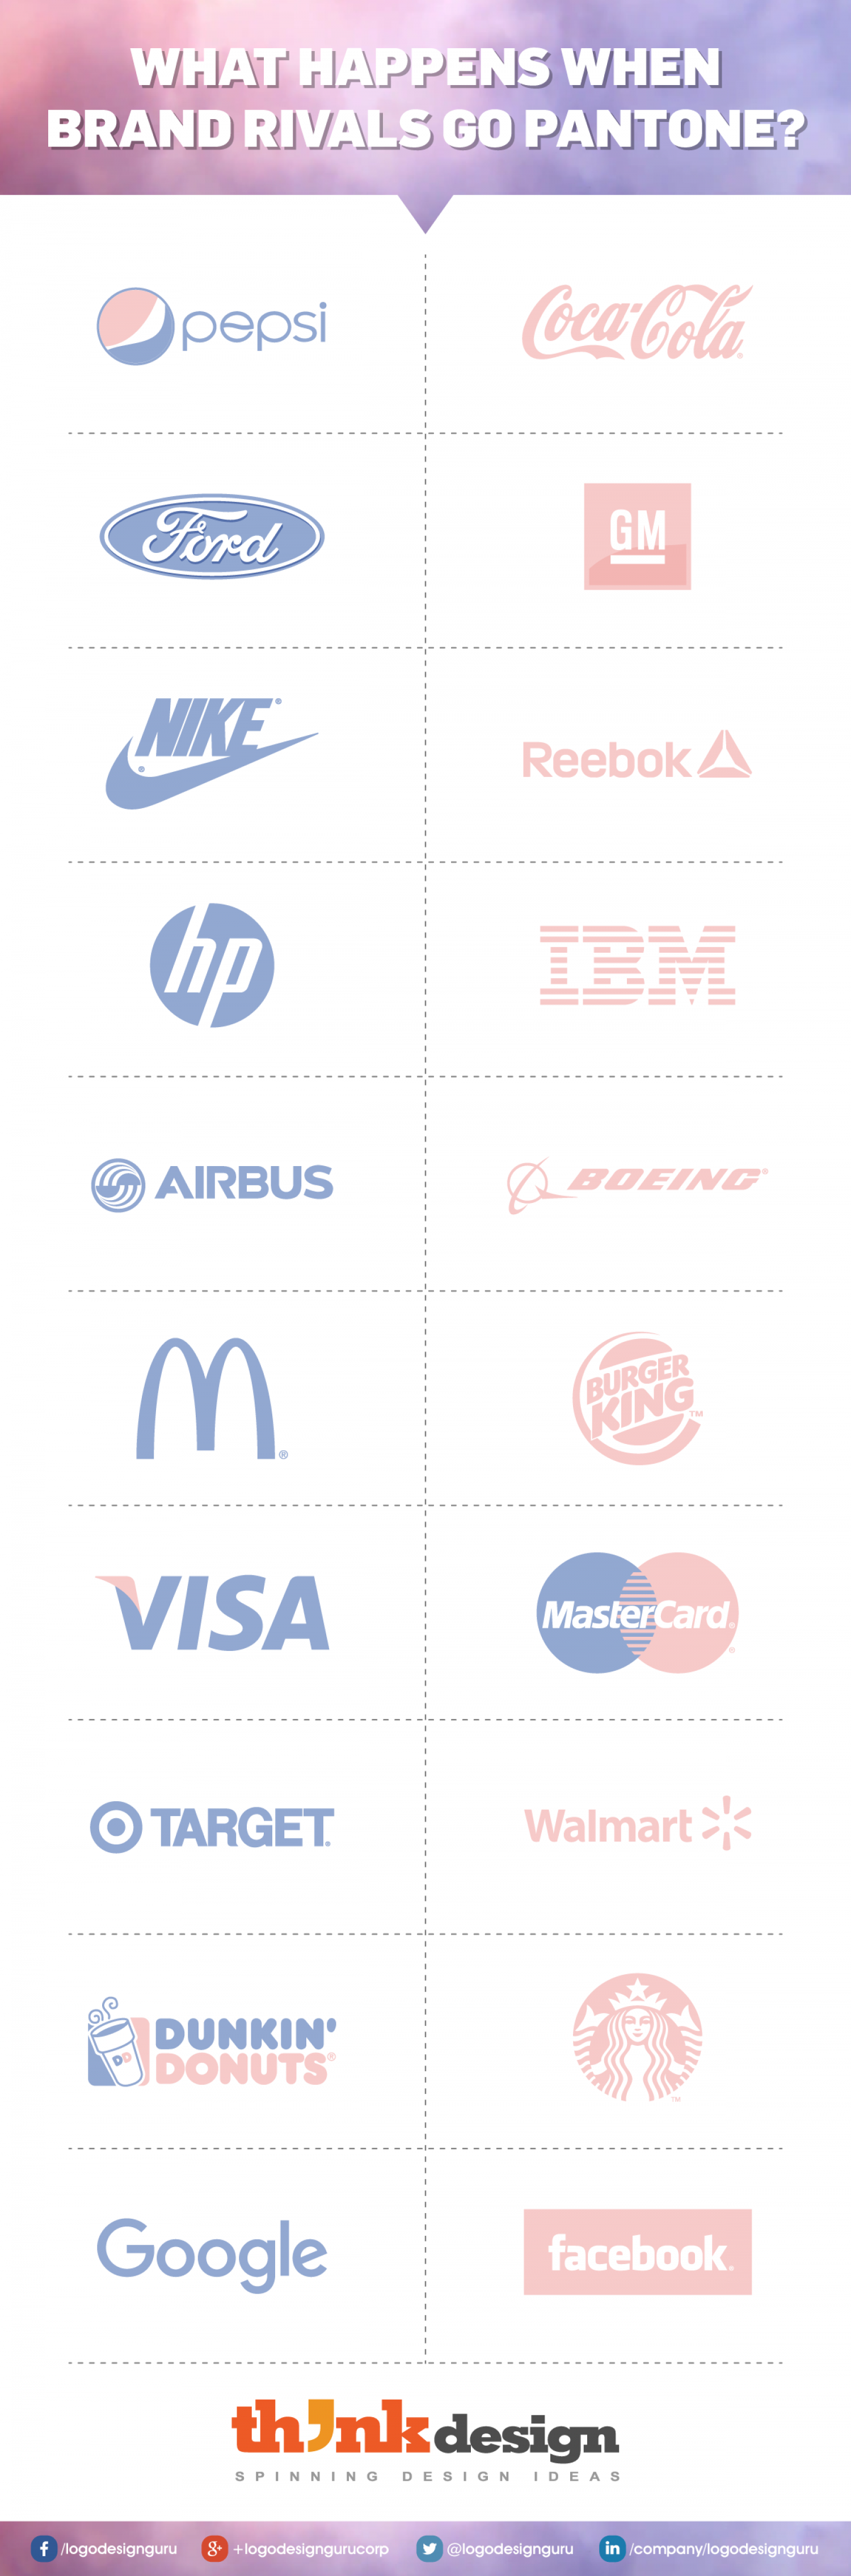 What Happens When Brand Rivals Go Pantone Infographic